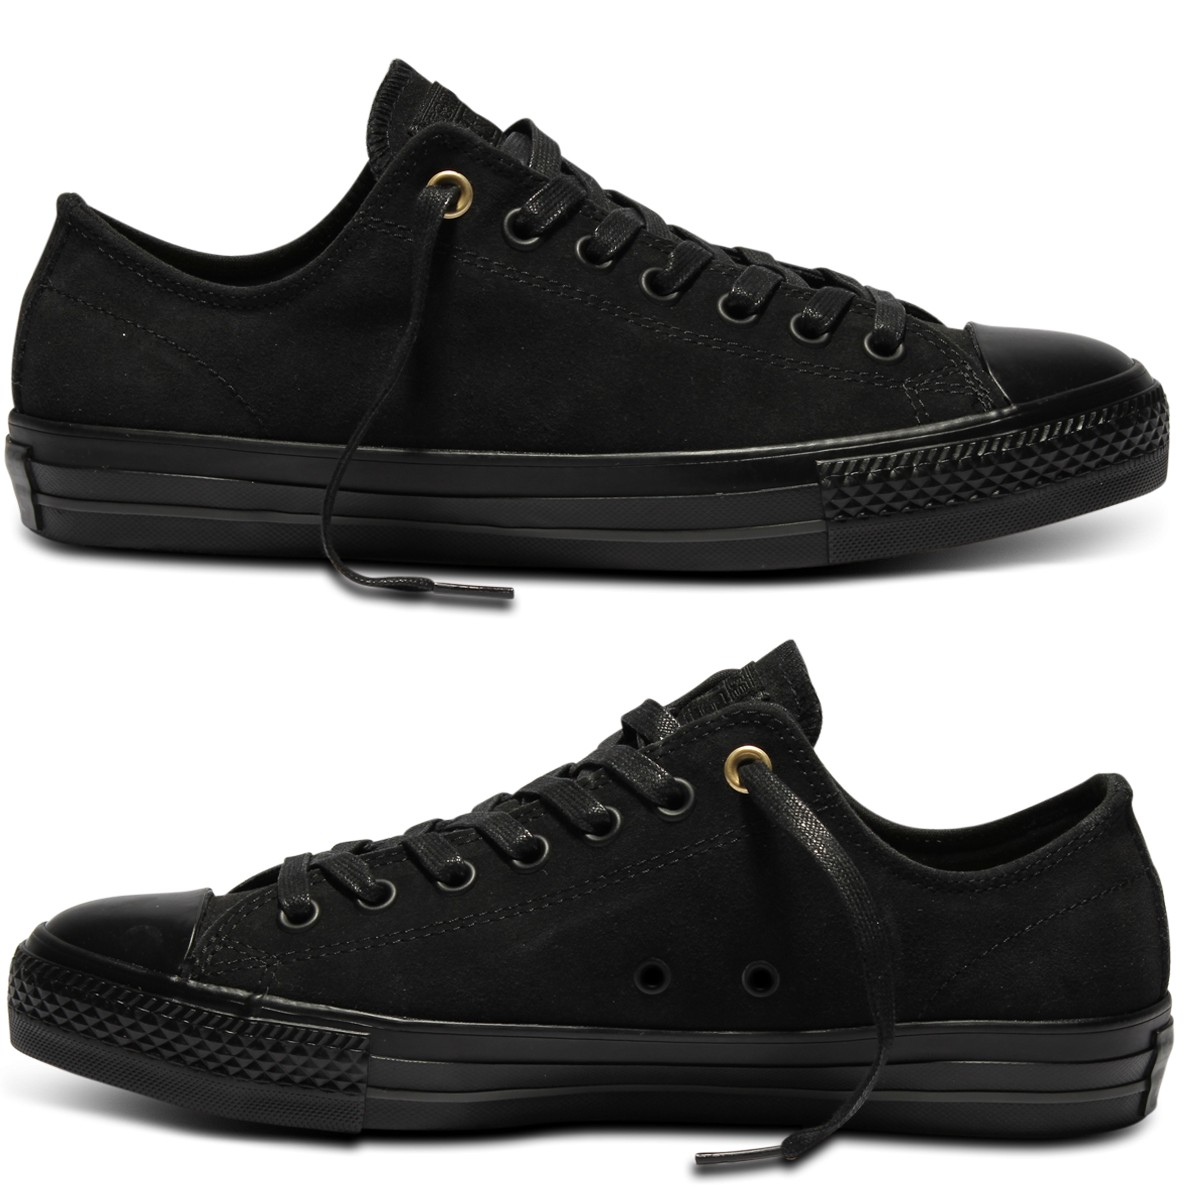 Cons Shoes CTAS Pro Low Black Storm Wind Weatherized Suede Skateboard Sneakers Converse FREE POST